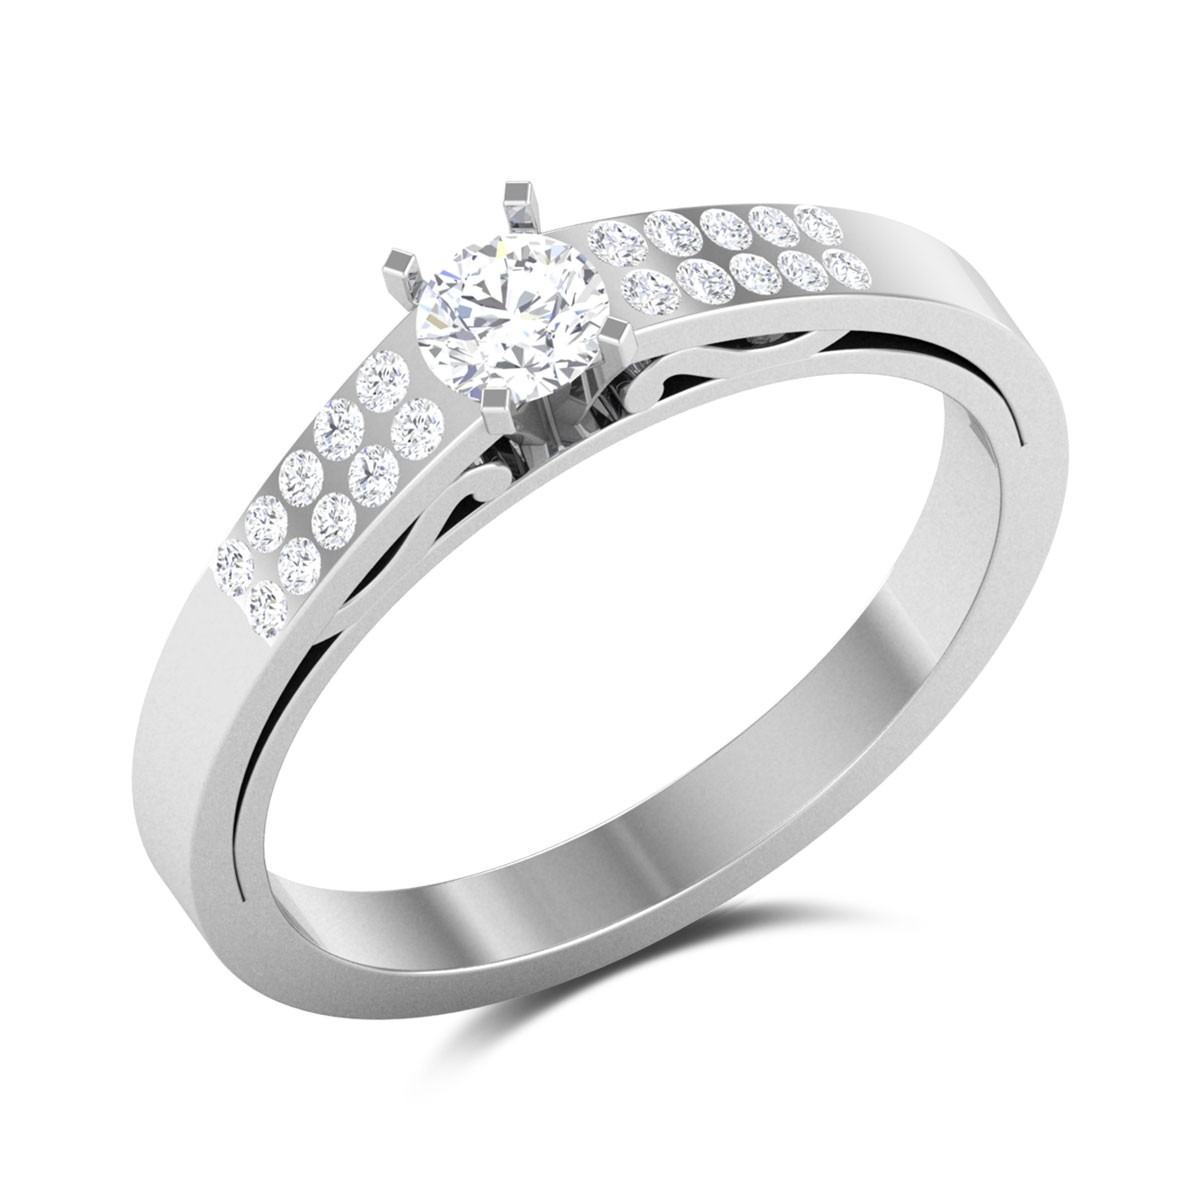 Fenella 4 Prong Solitaire Ring